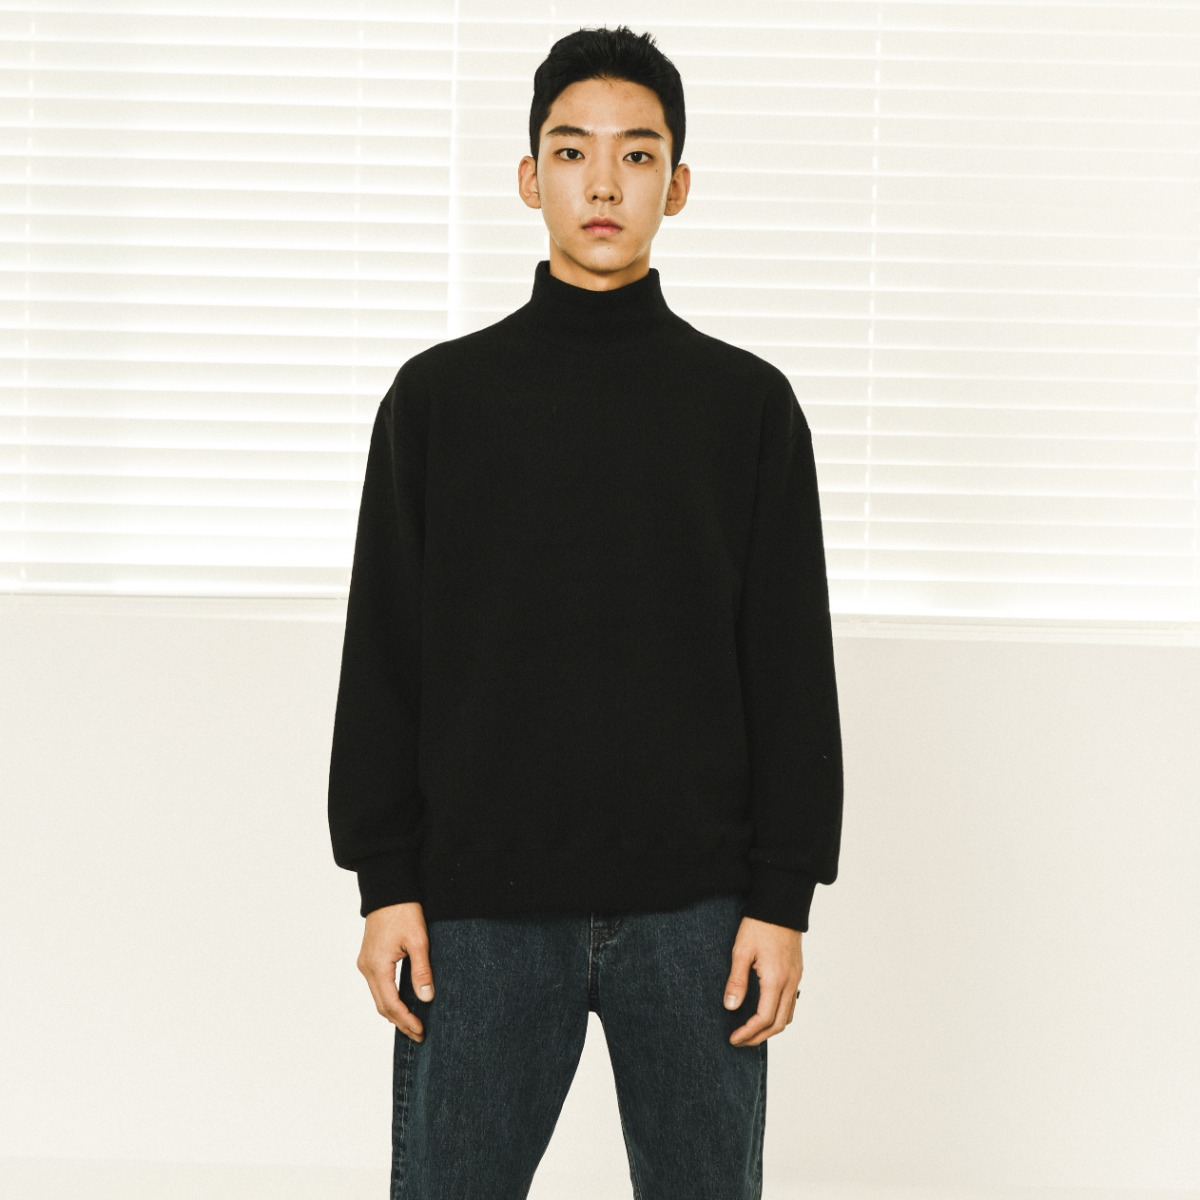 Soft Poloneck Knit - Black